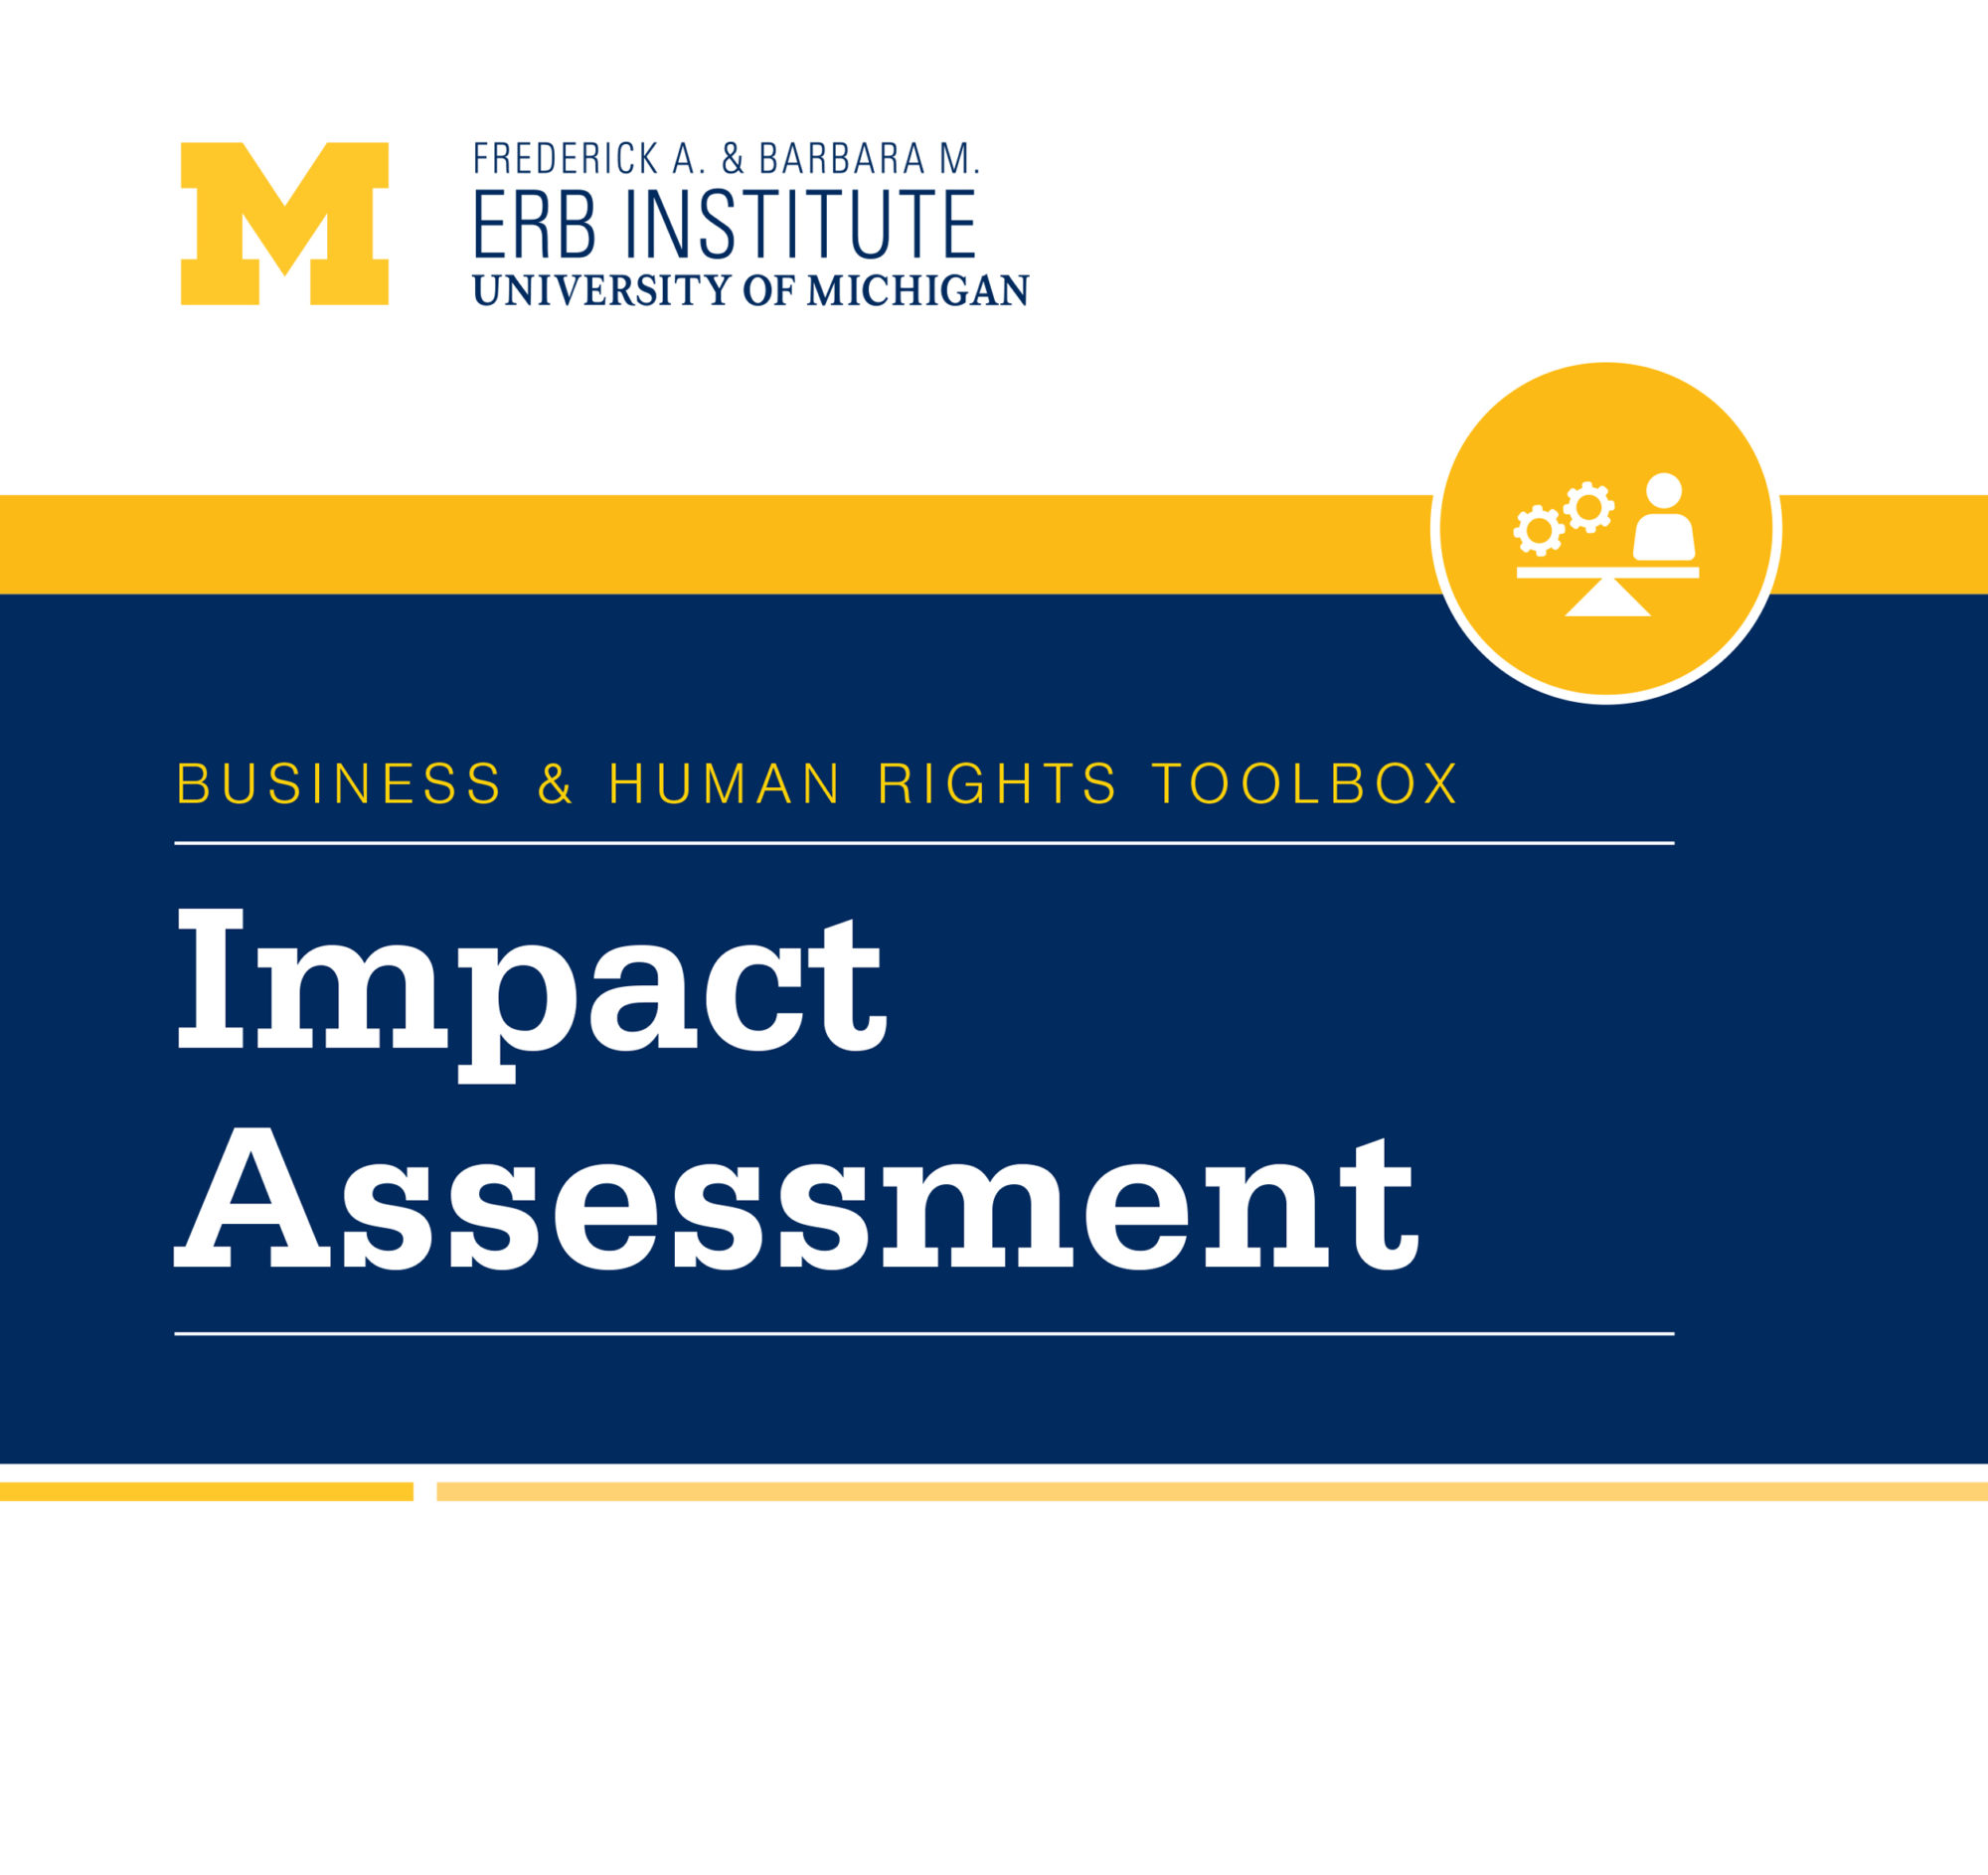 Business & Human Rights Toolbox: Impact Assessment